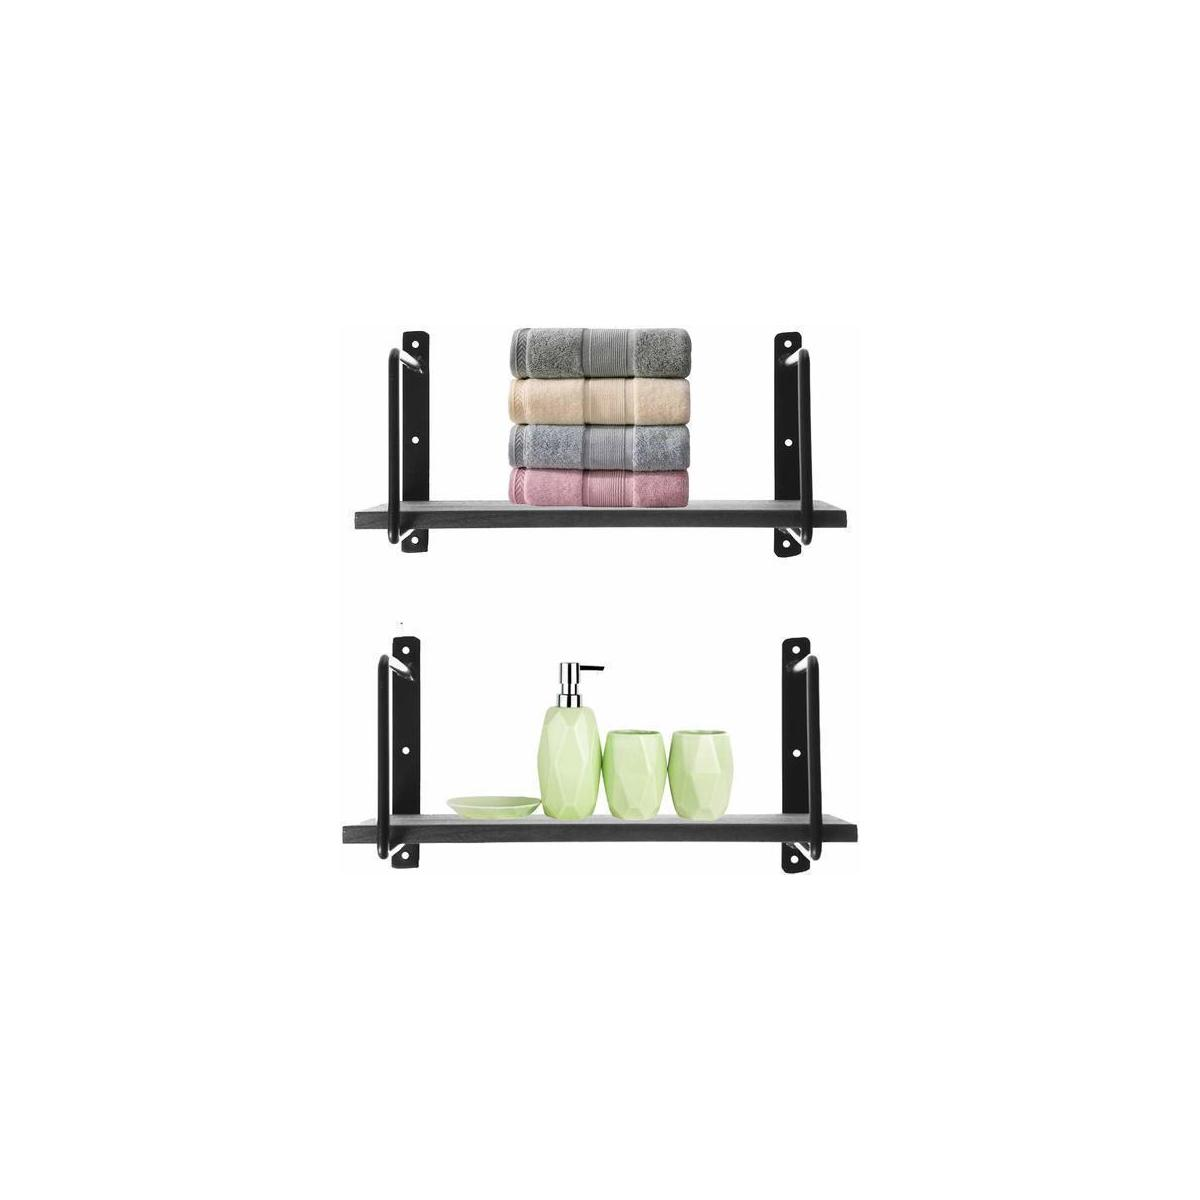 Riplz Home Wall Shelf